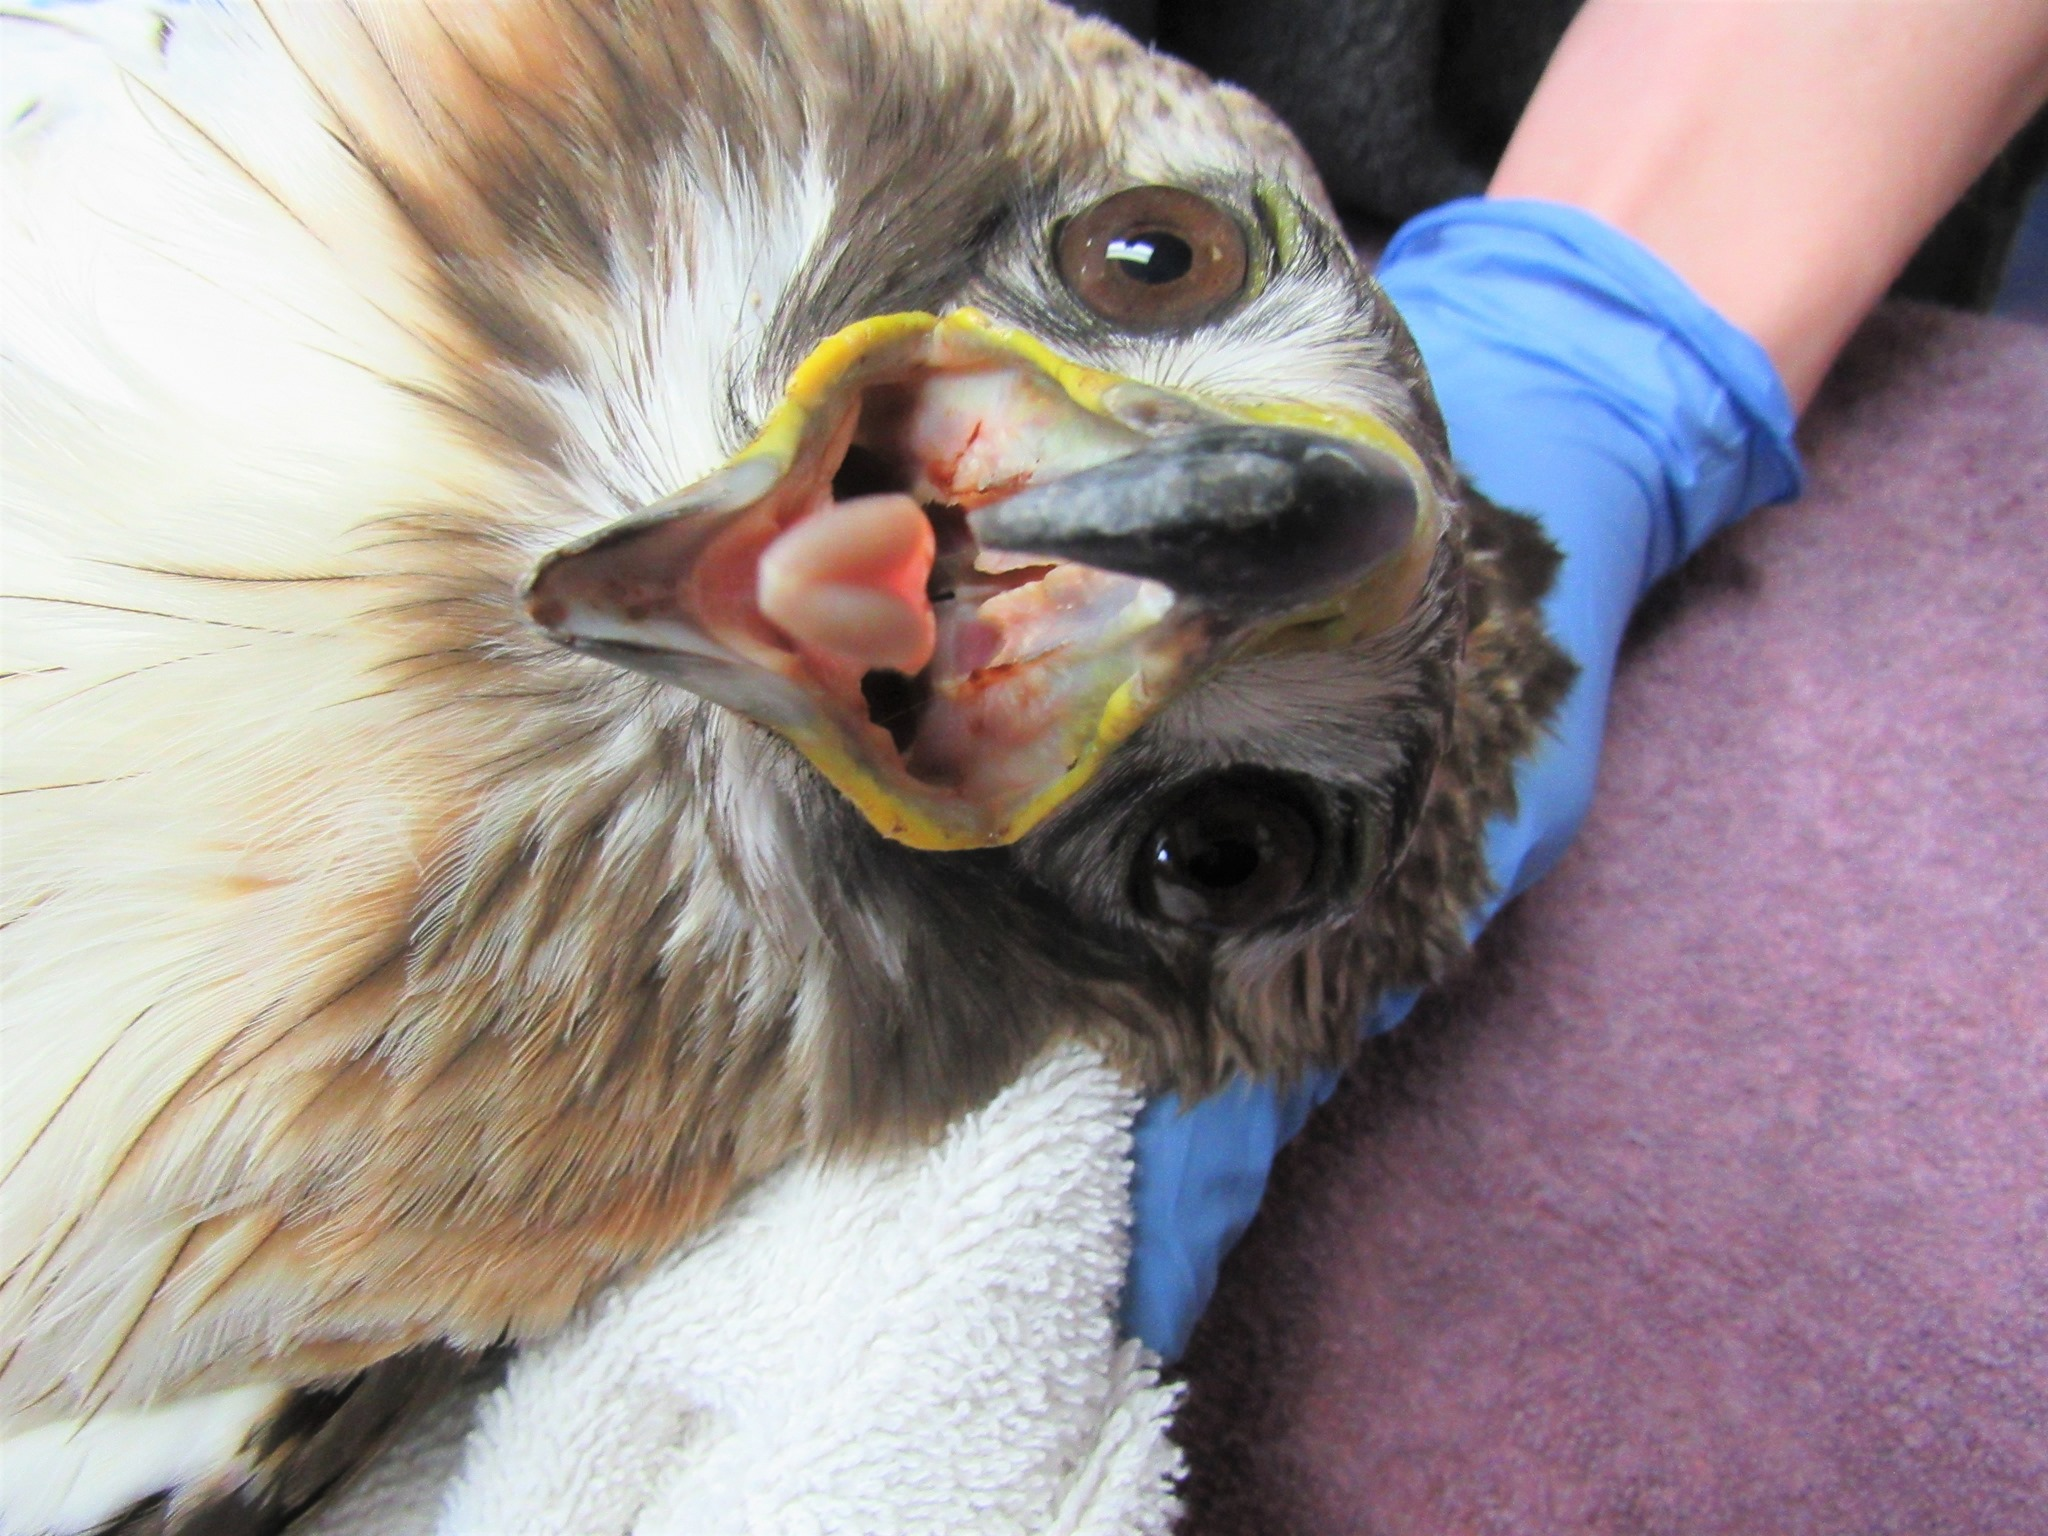 You can see the blood in the hawks mouth which indicates internal bleeding, in this case his lungs are injured.